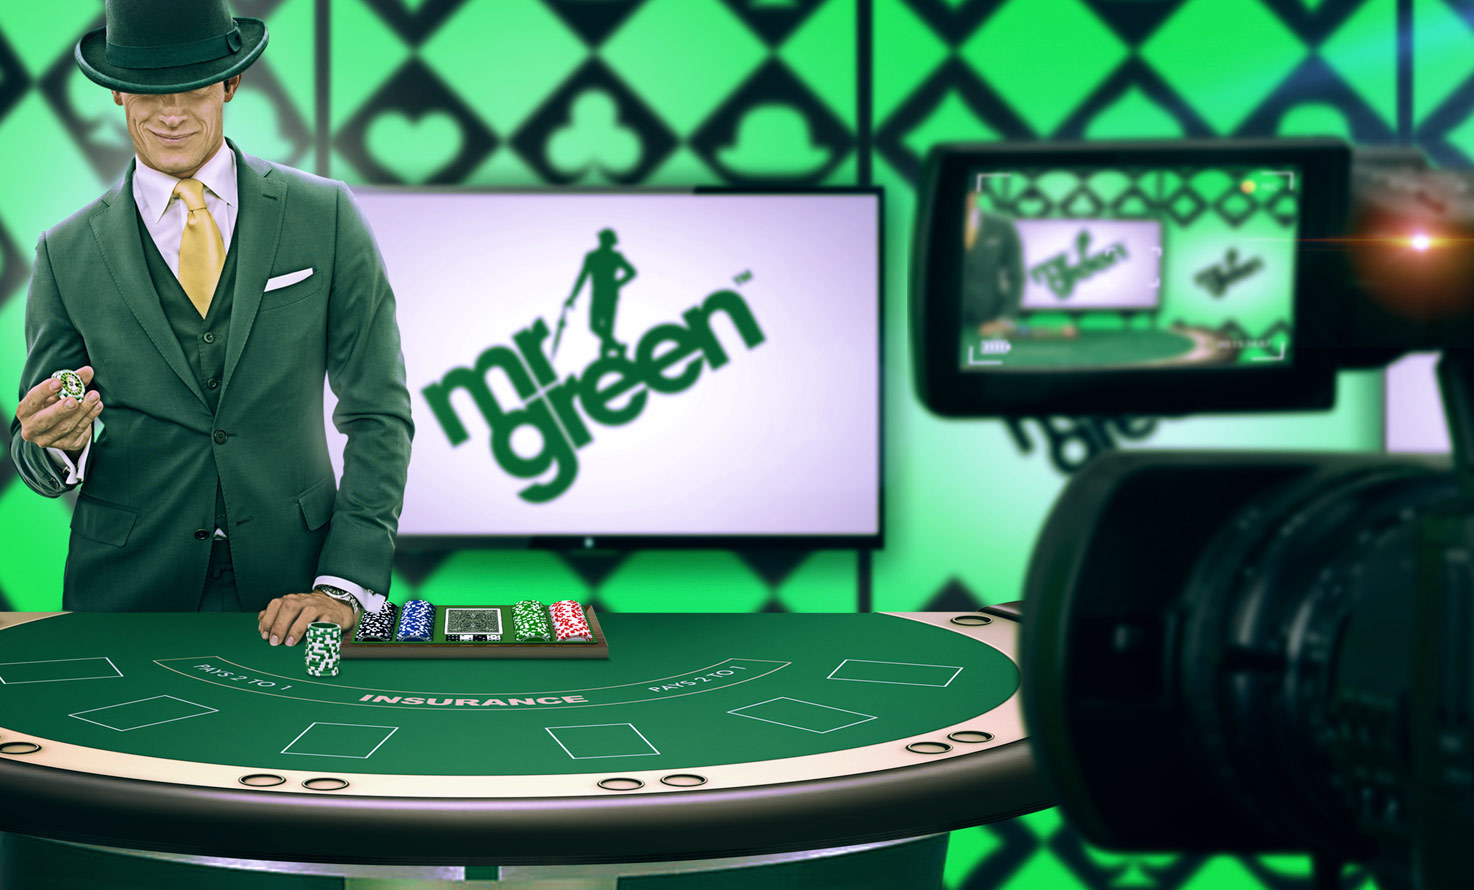 Mr Green - Award winning Online Casino